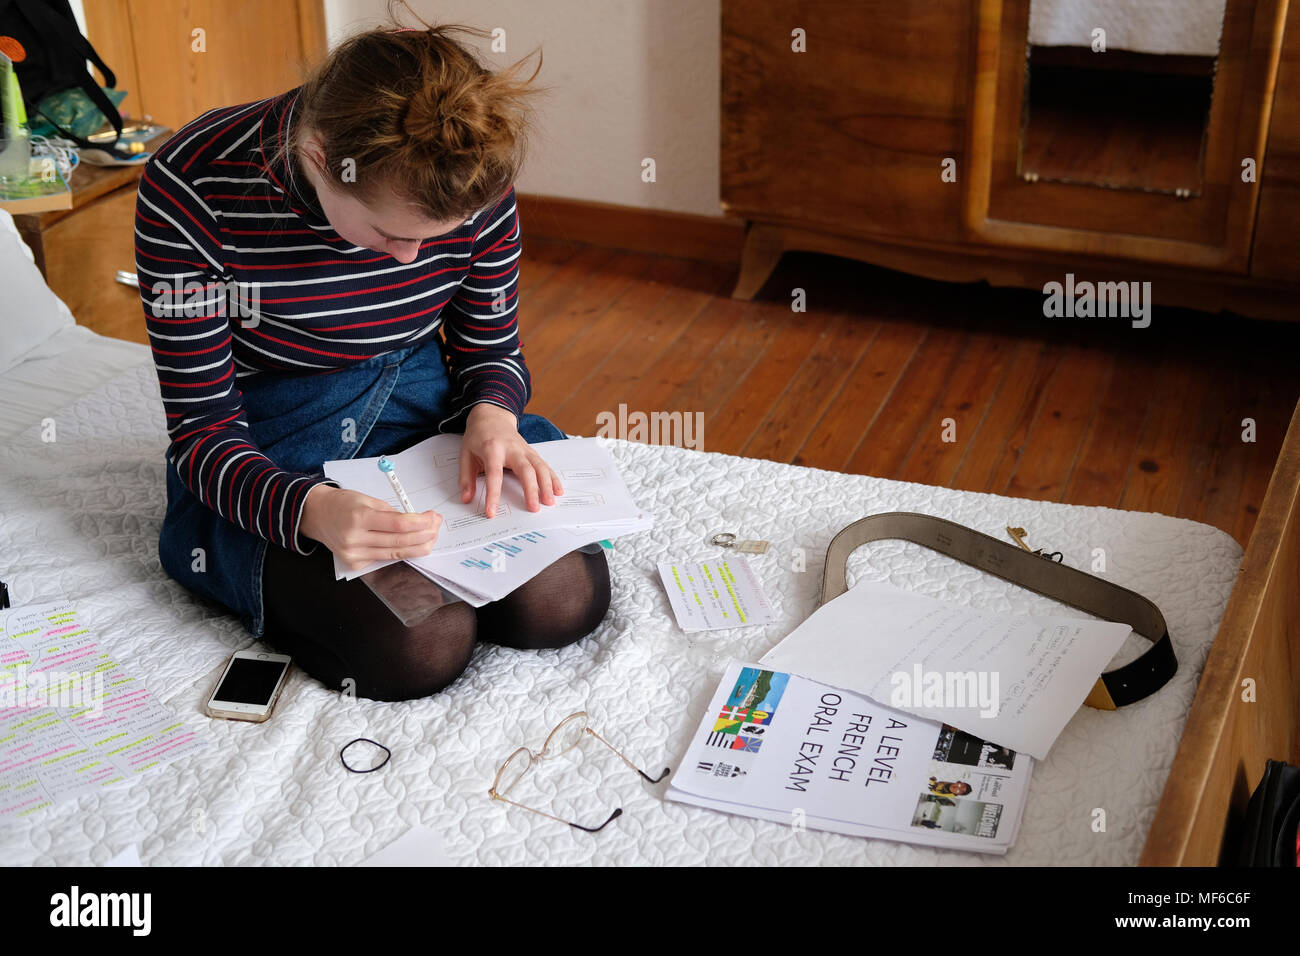 A 17 year old girl studying for A levels in her bedroom. - Stock Image